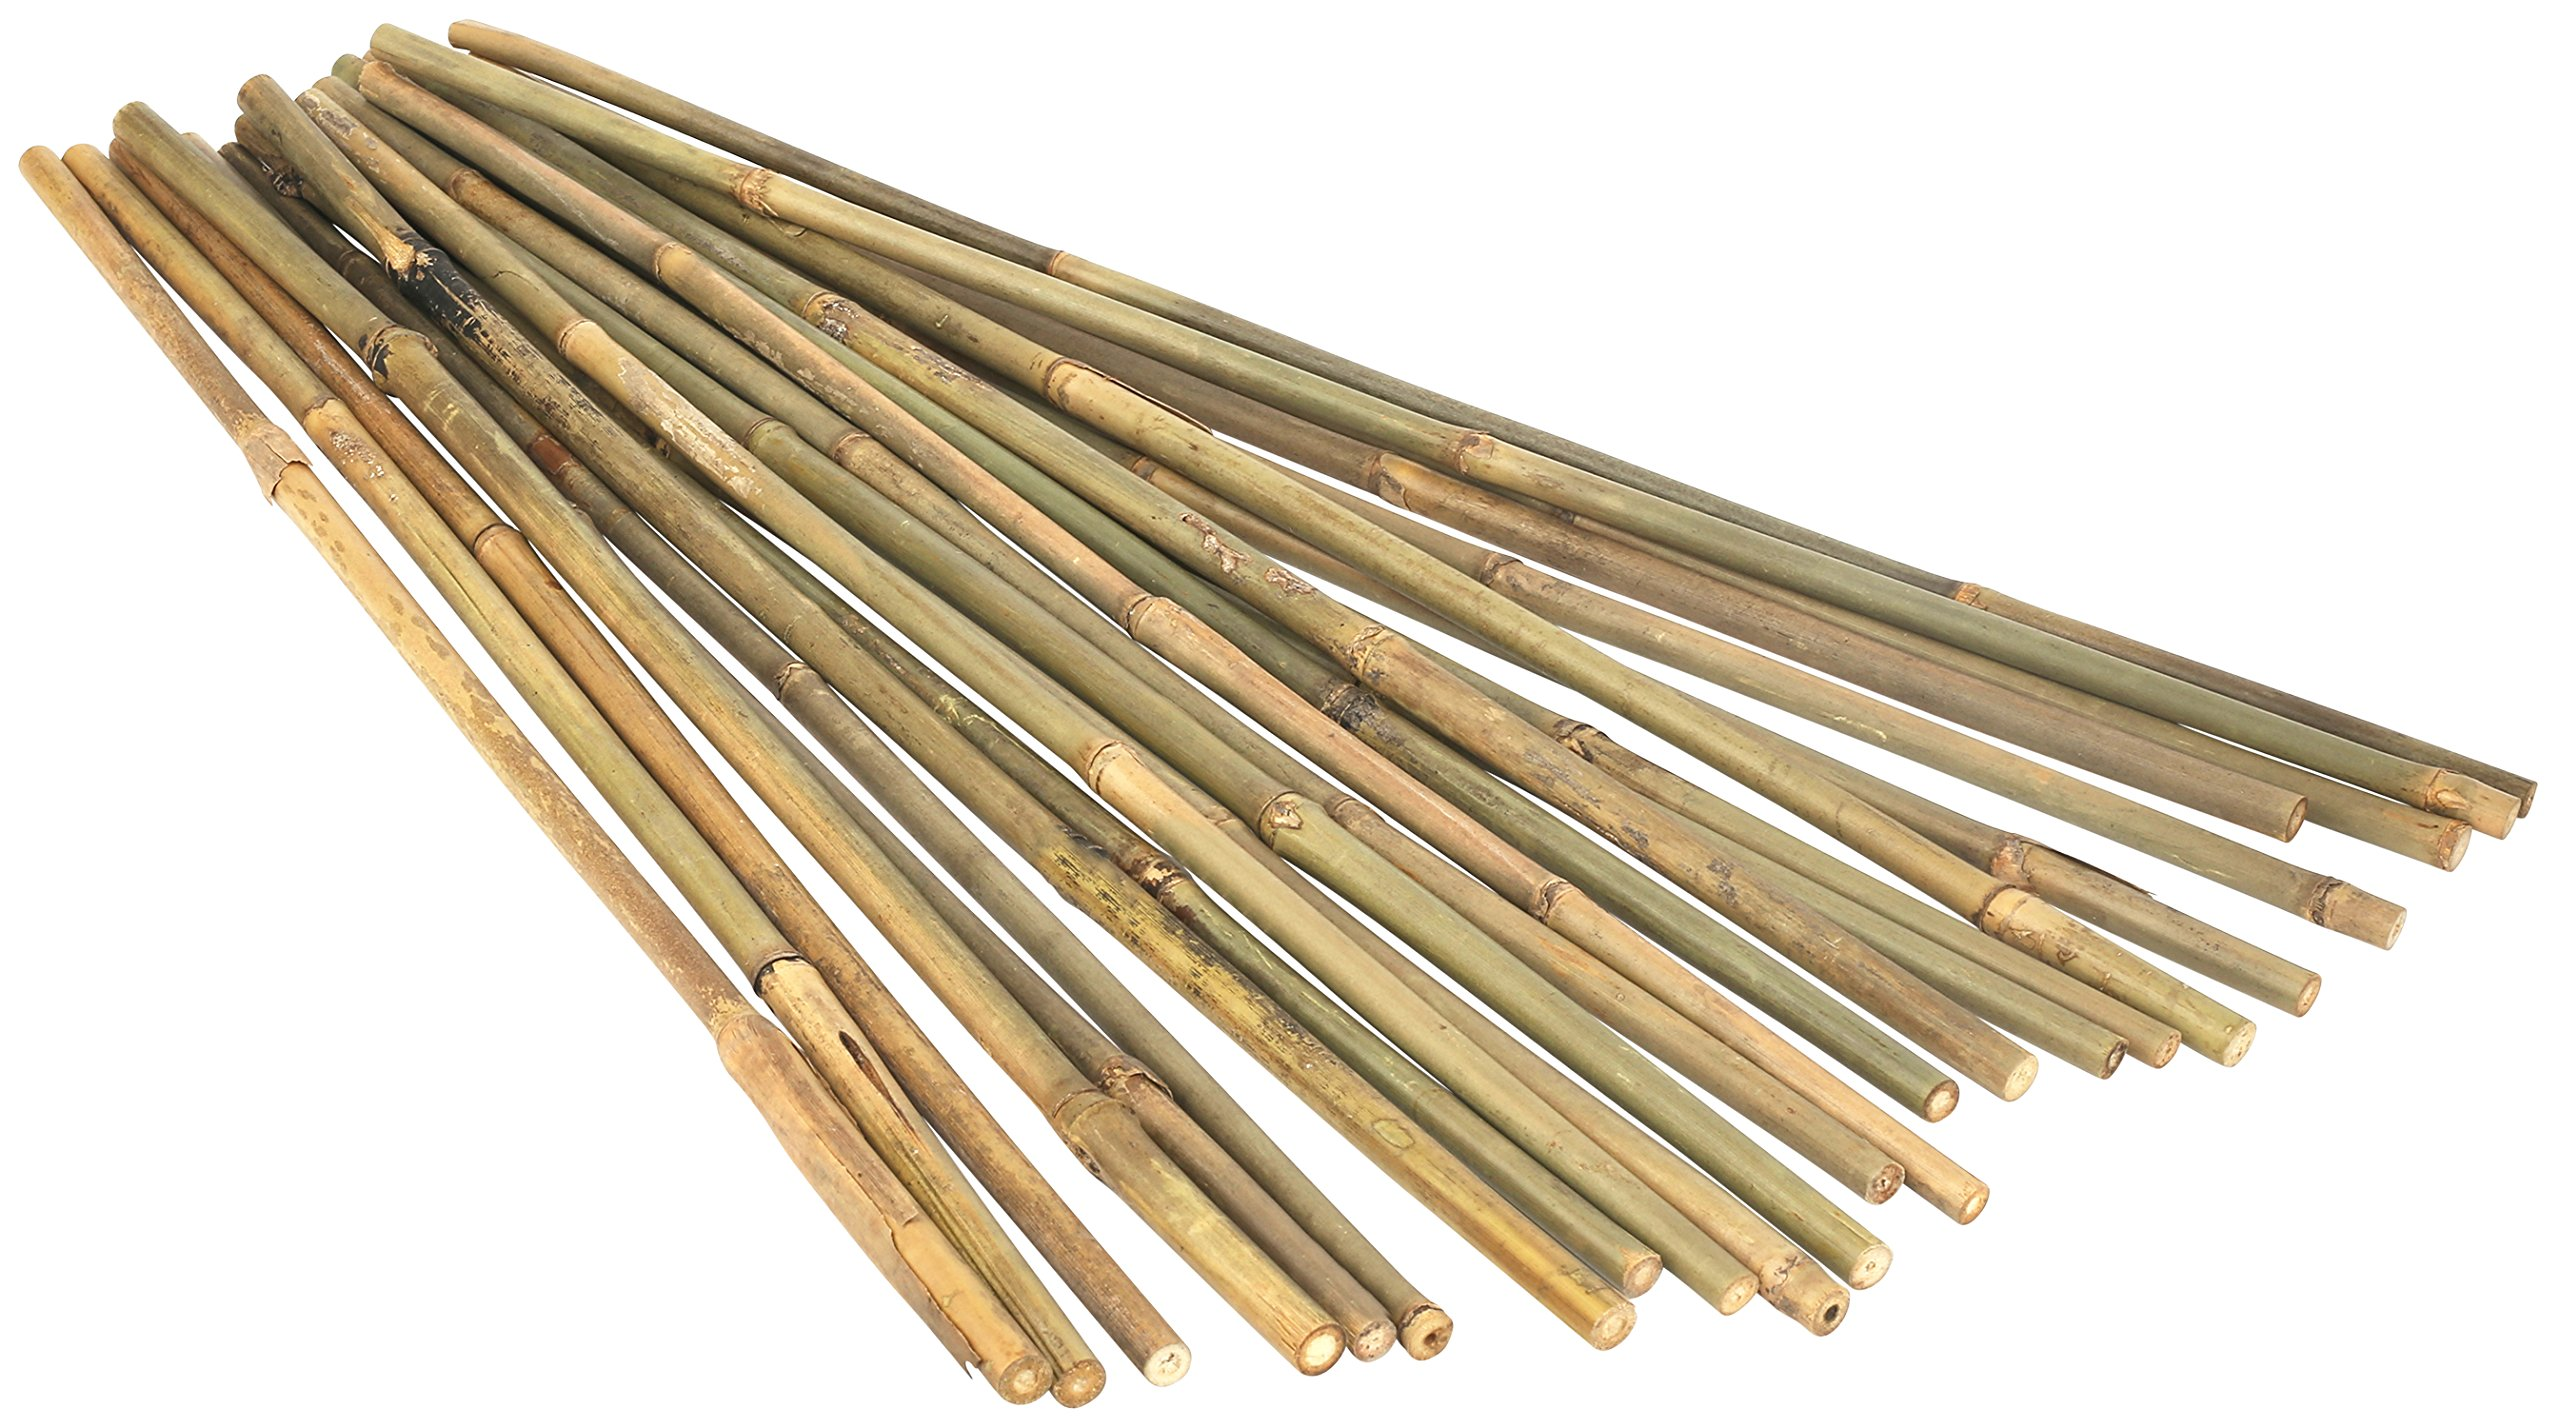 Kaya Collection 1260 1/2 Inch Bamboo Stake Poles-12 Pack, 6 Feet, Natural